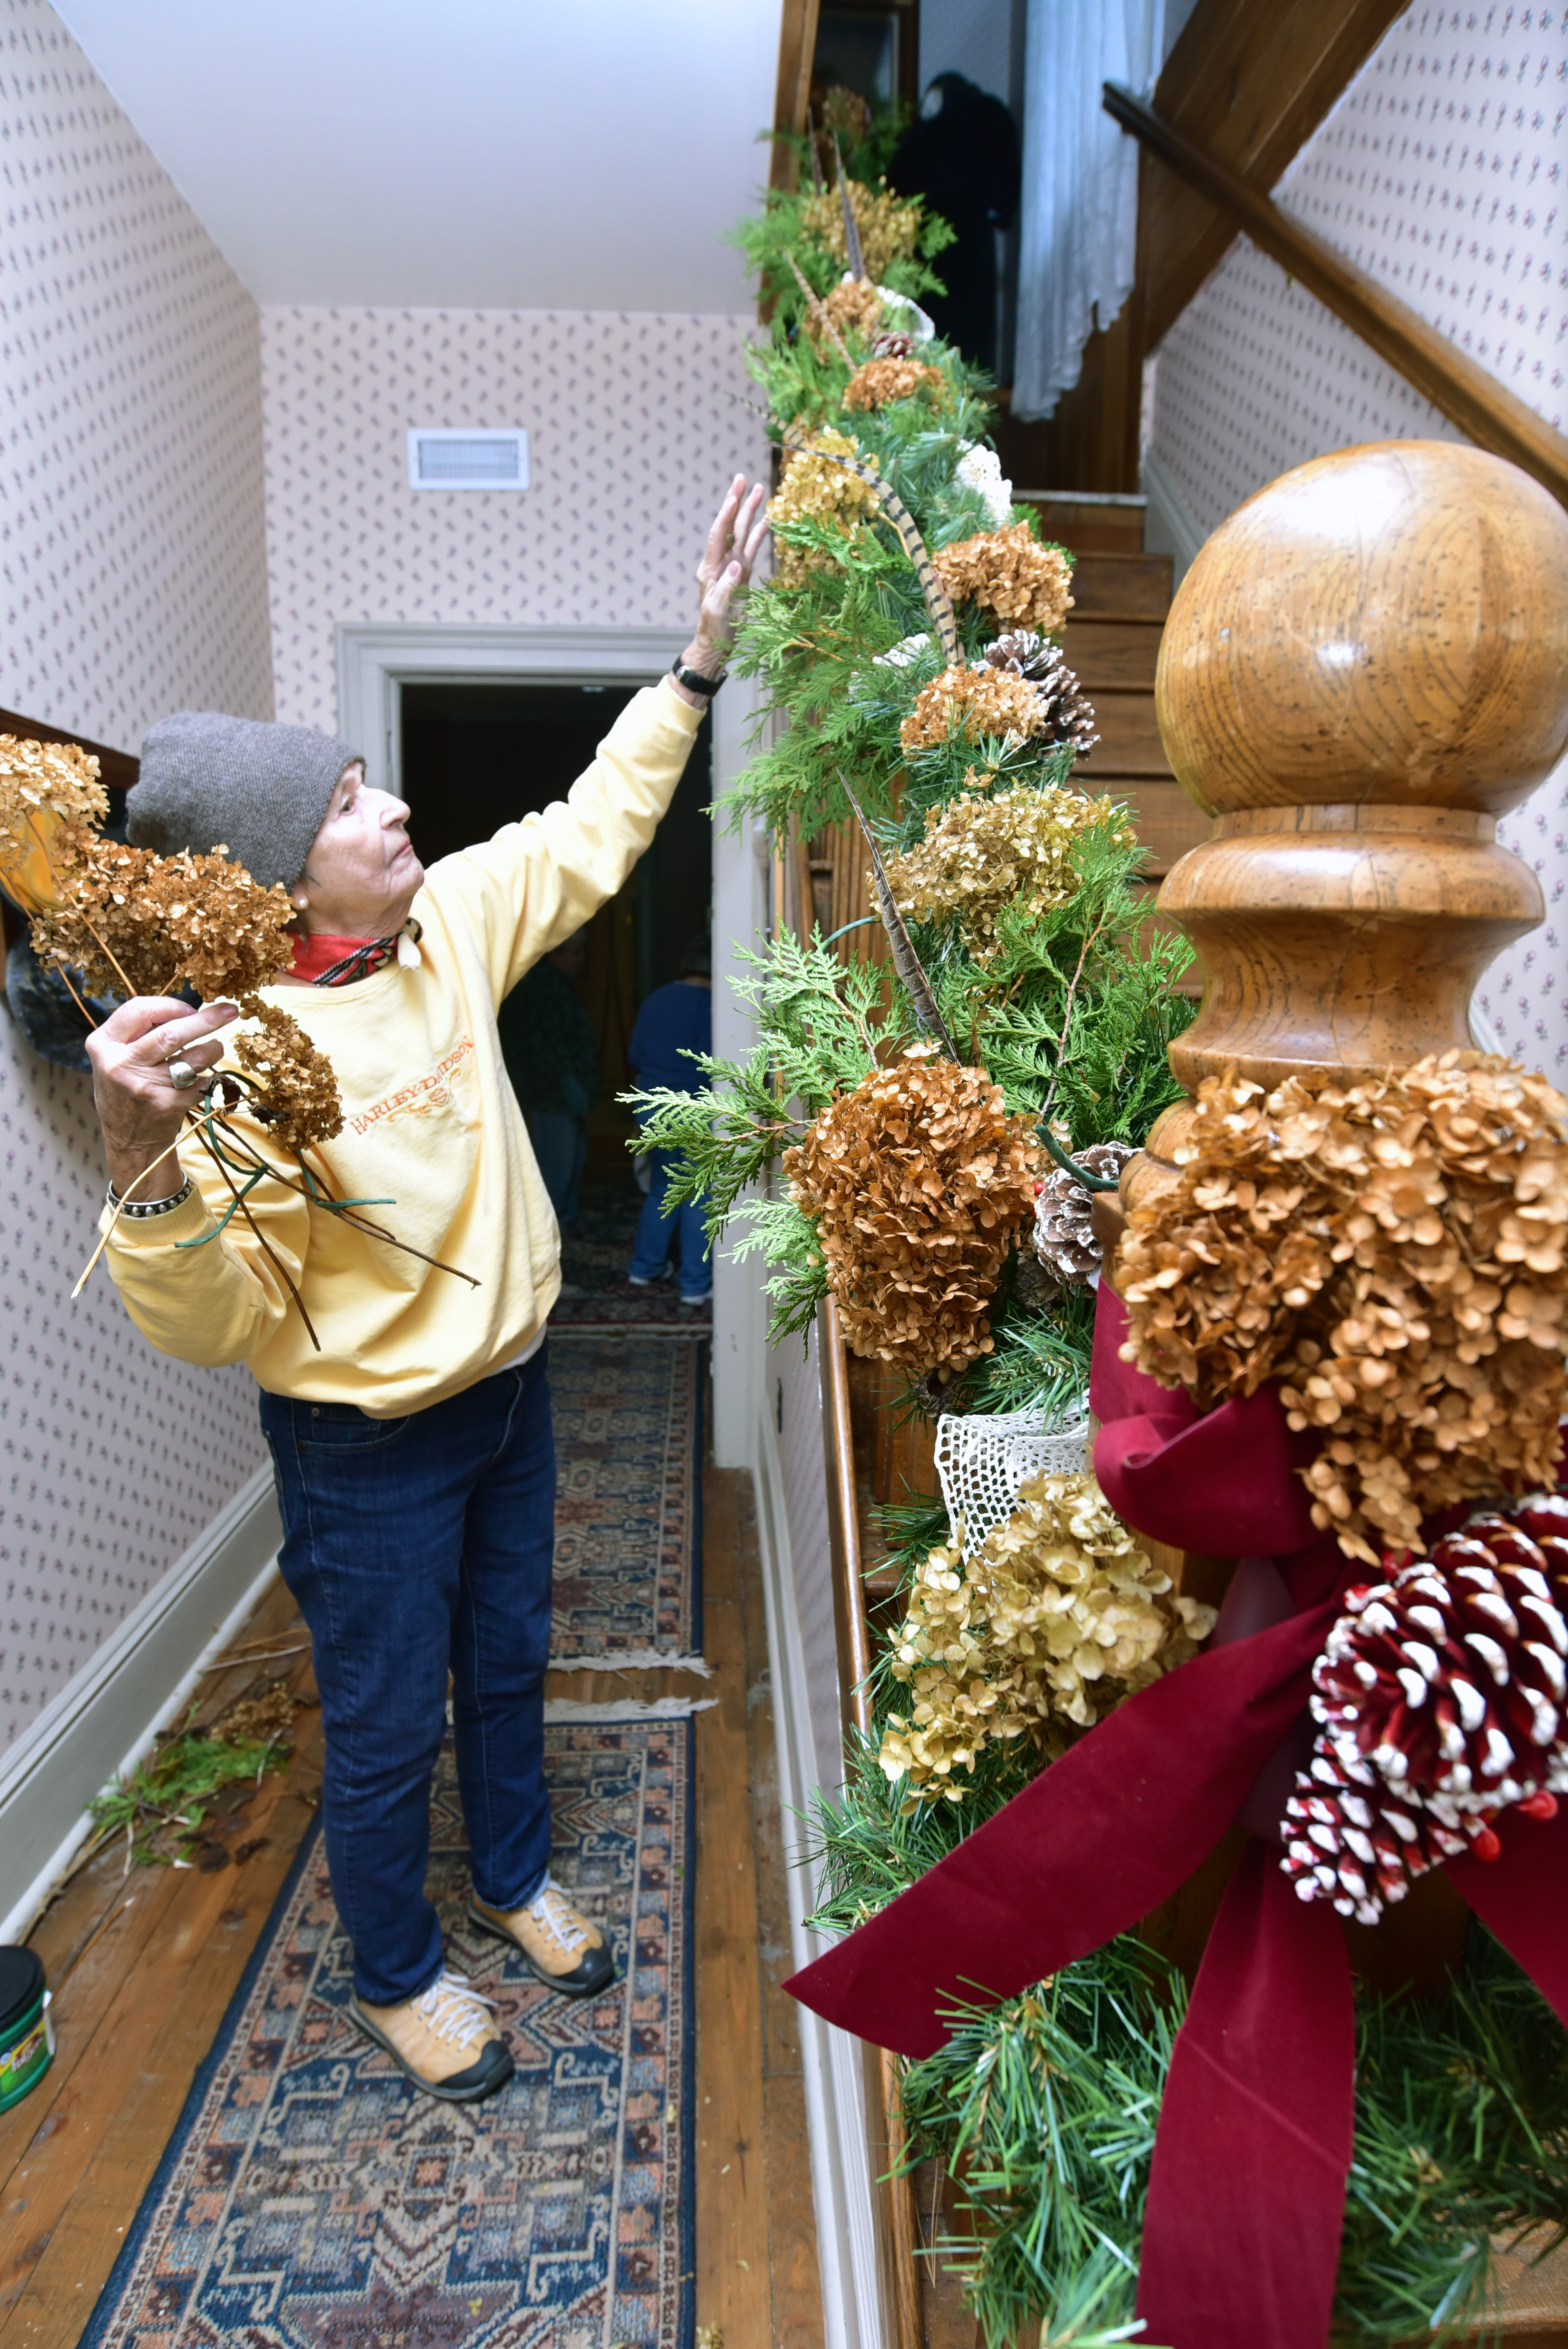 Roscommon Christmas In The Village 2020 Christmas in the Village Saturday | Houghton Lake Resorter